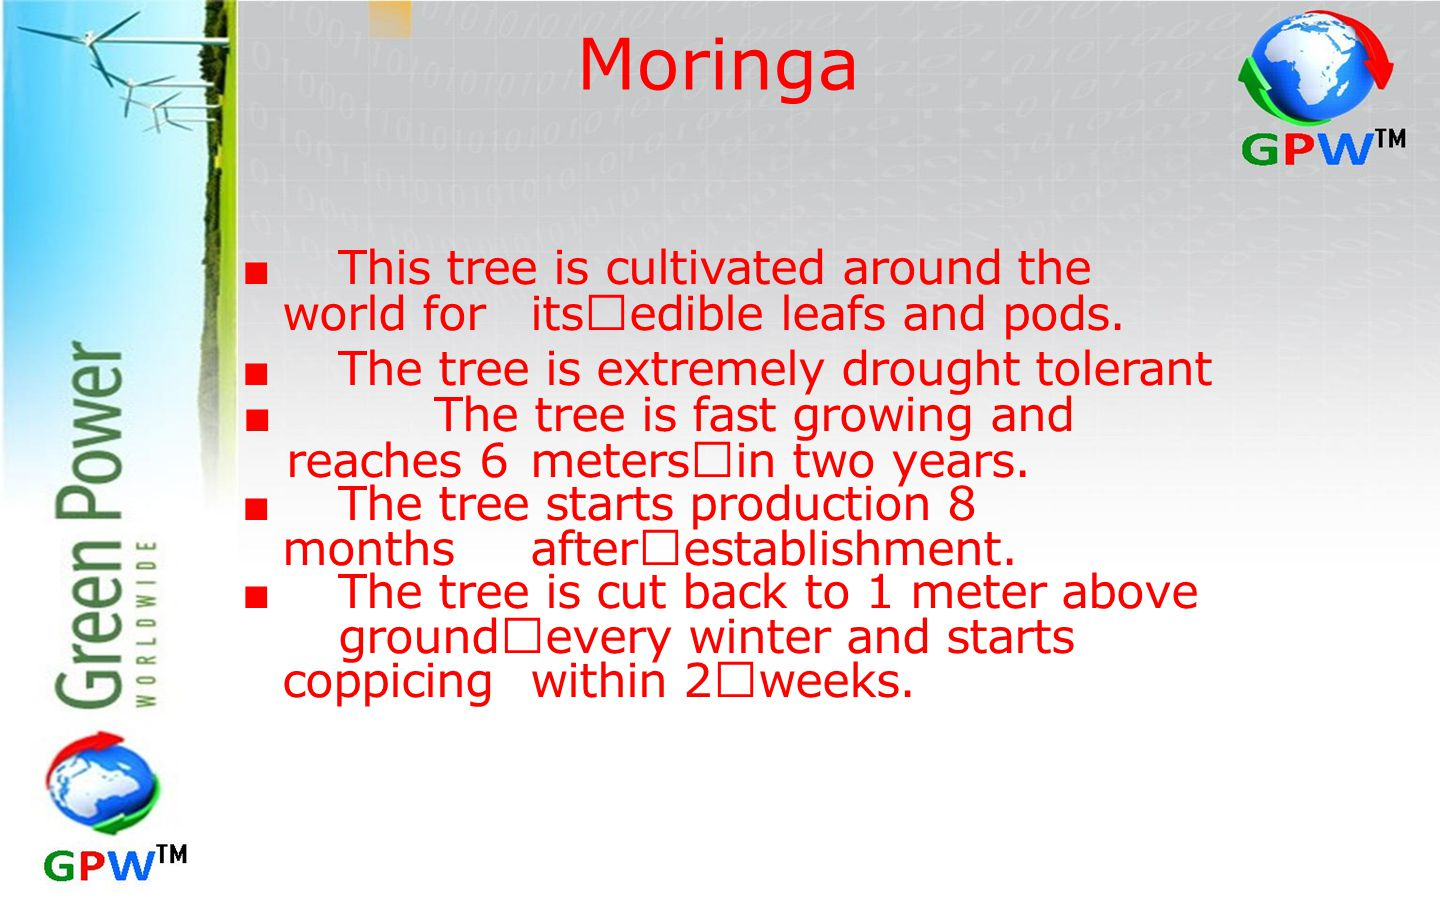 Moringa ■ This tree is cultivated around the world for its edible leafs and pods. ■ The tree is extremely drought tolerant.